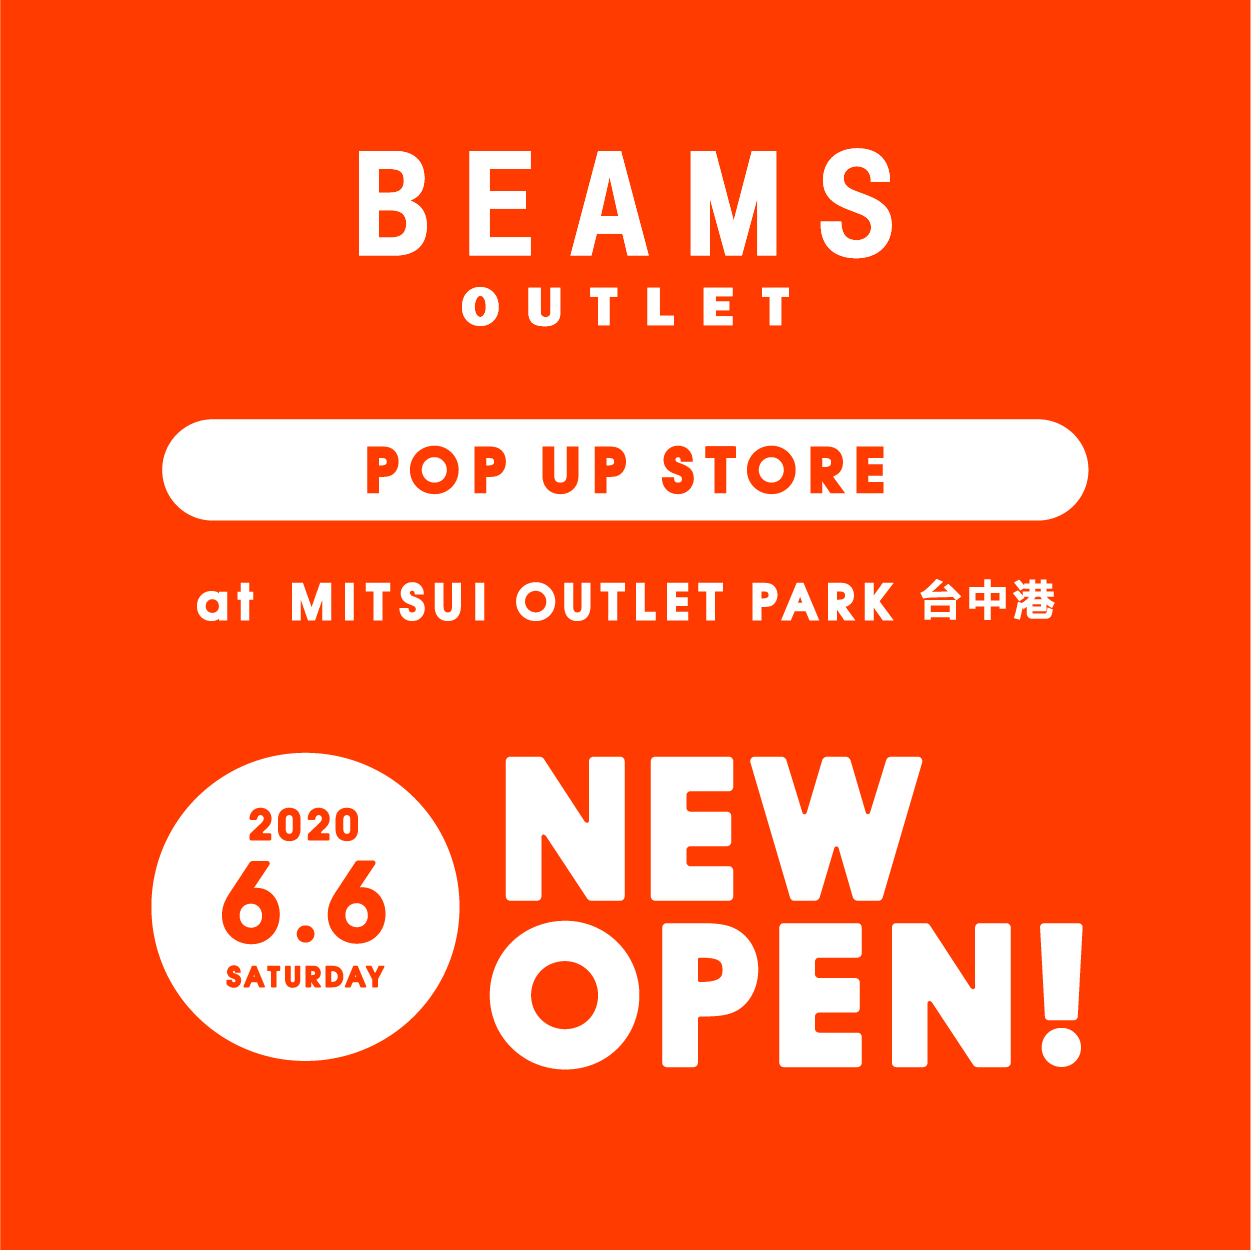 BEAMS OUTLET台中三井期間限定店 NEW OPEN!